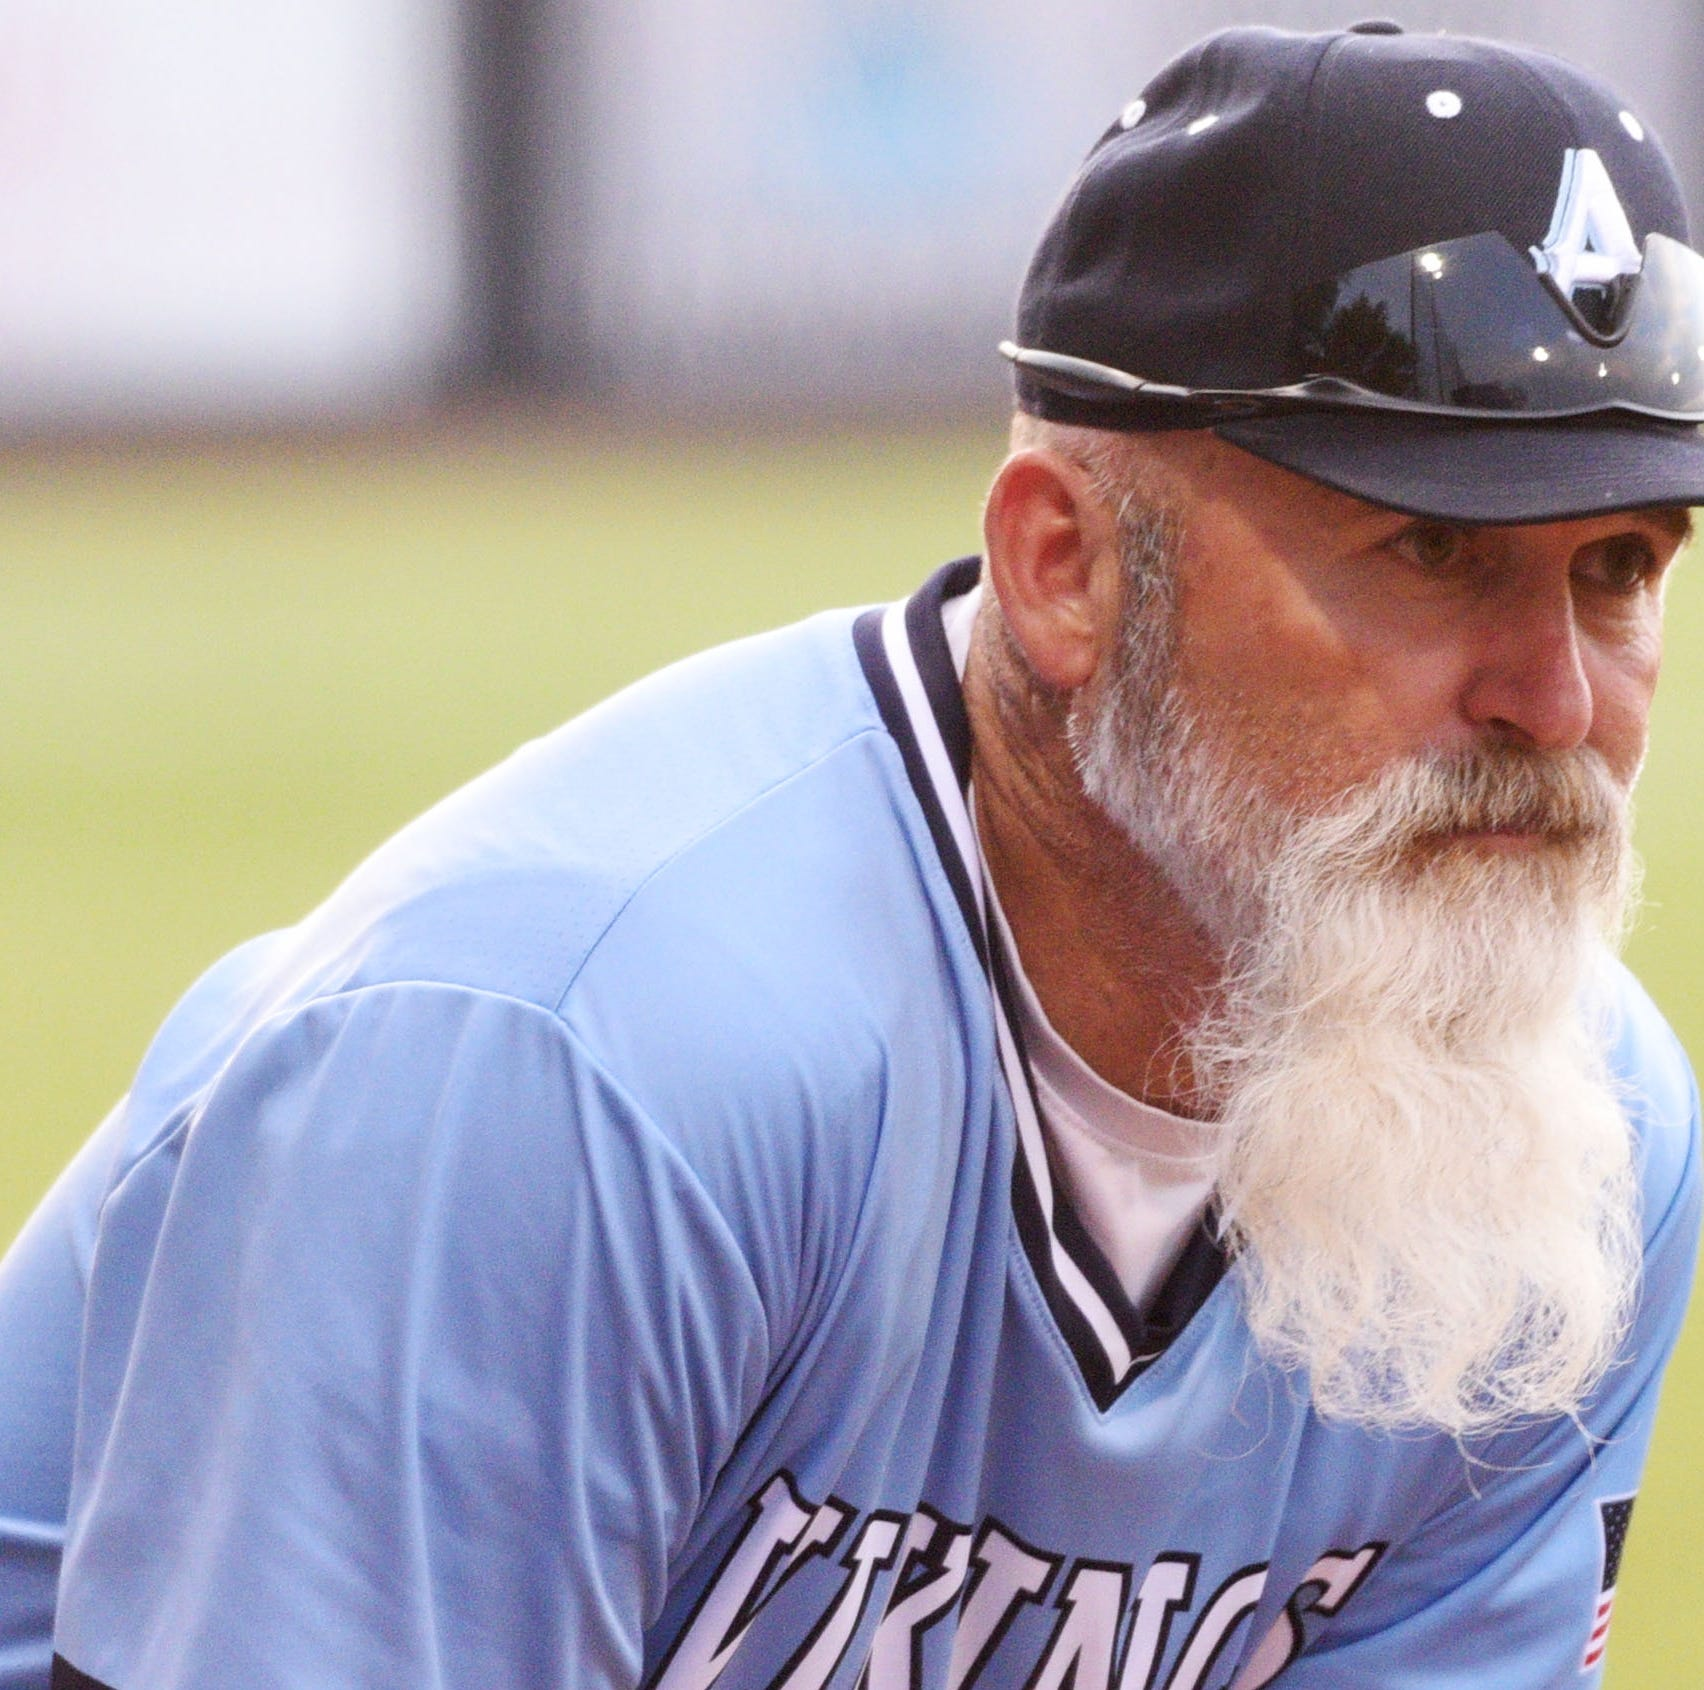 Making sense of Toby Todd's beard, 400 wins